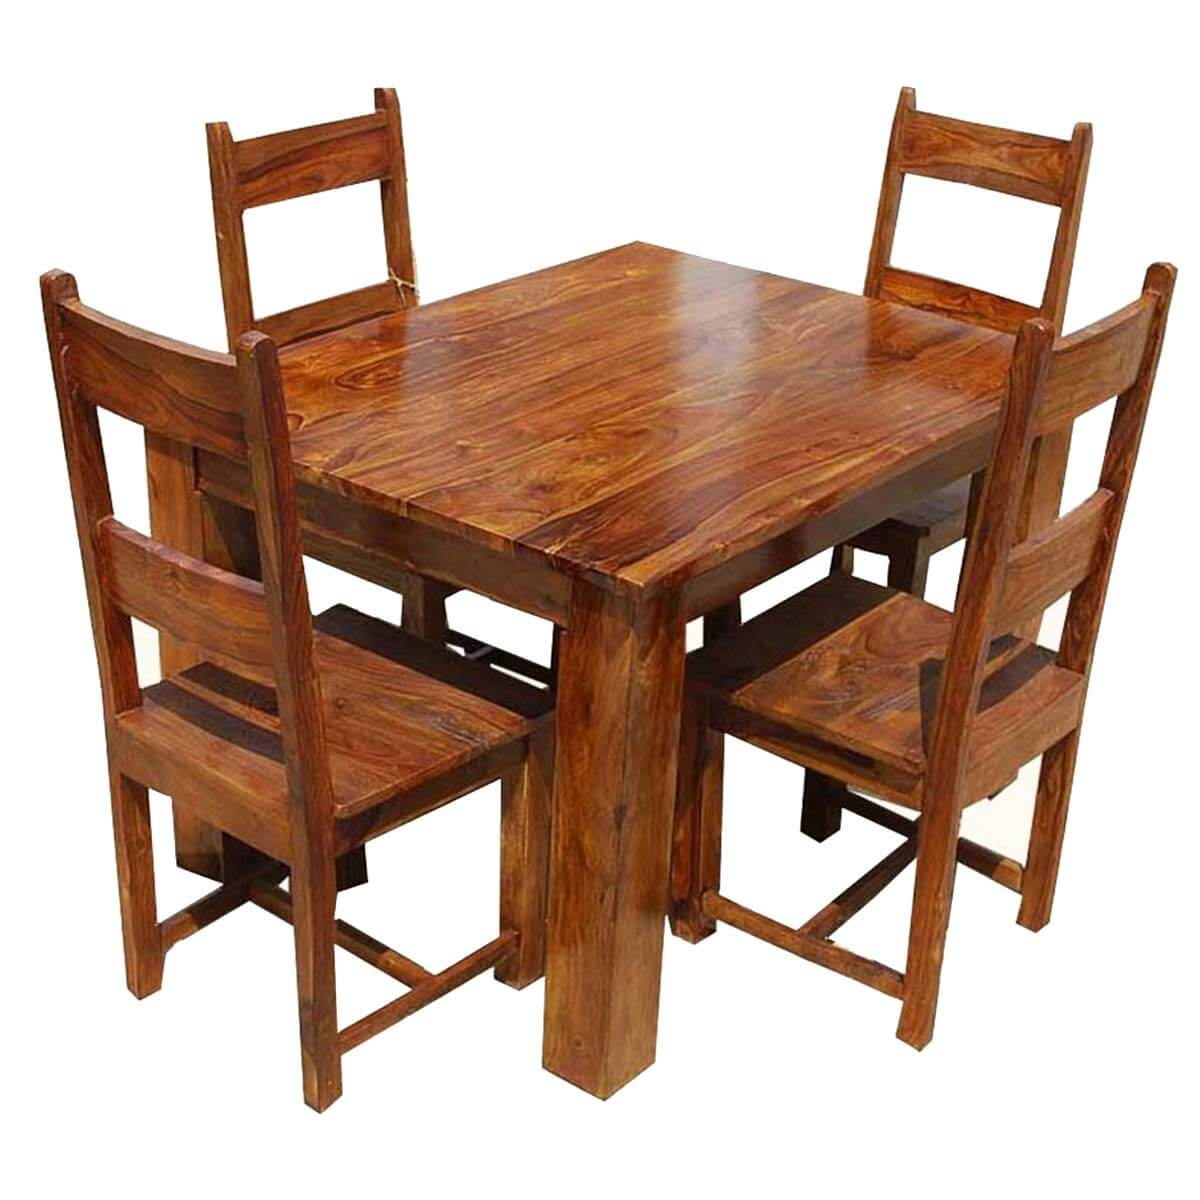 Rustic mission santa cruz solid wood dining room set for 4 for Wood dining room furniture